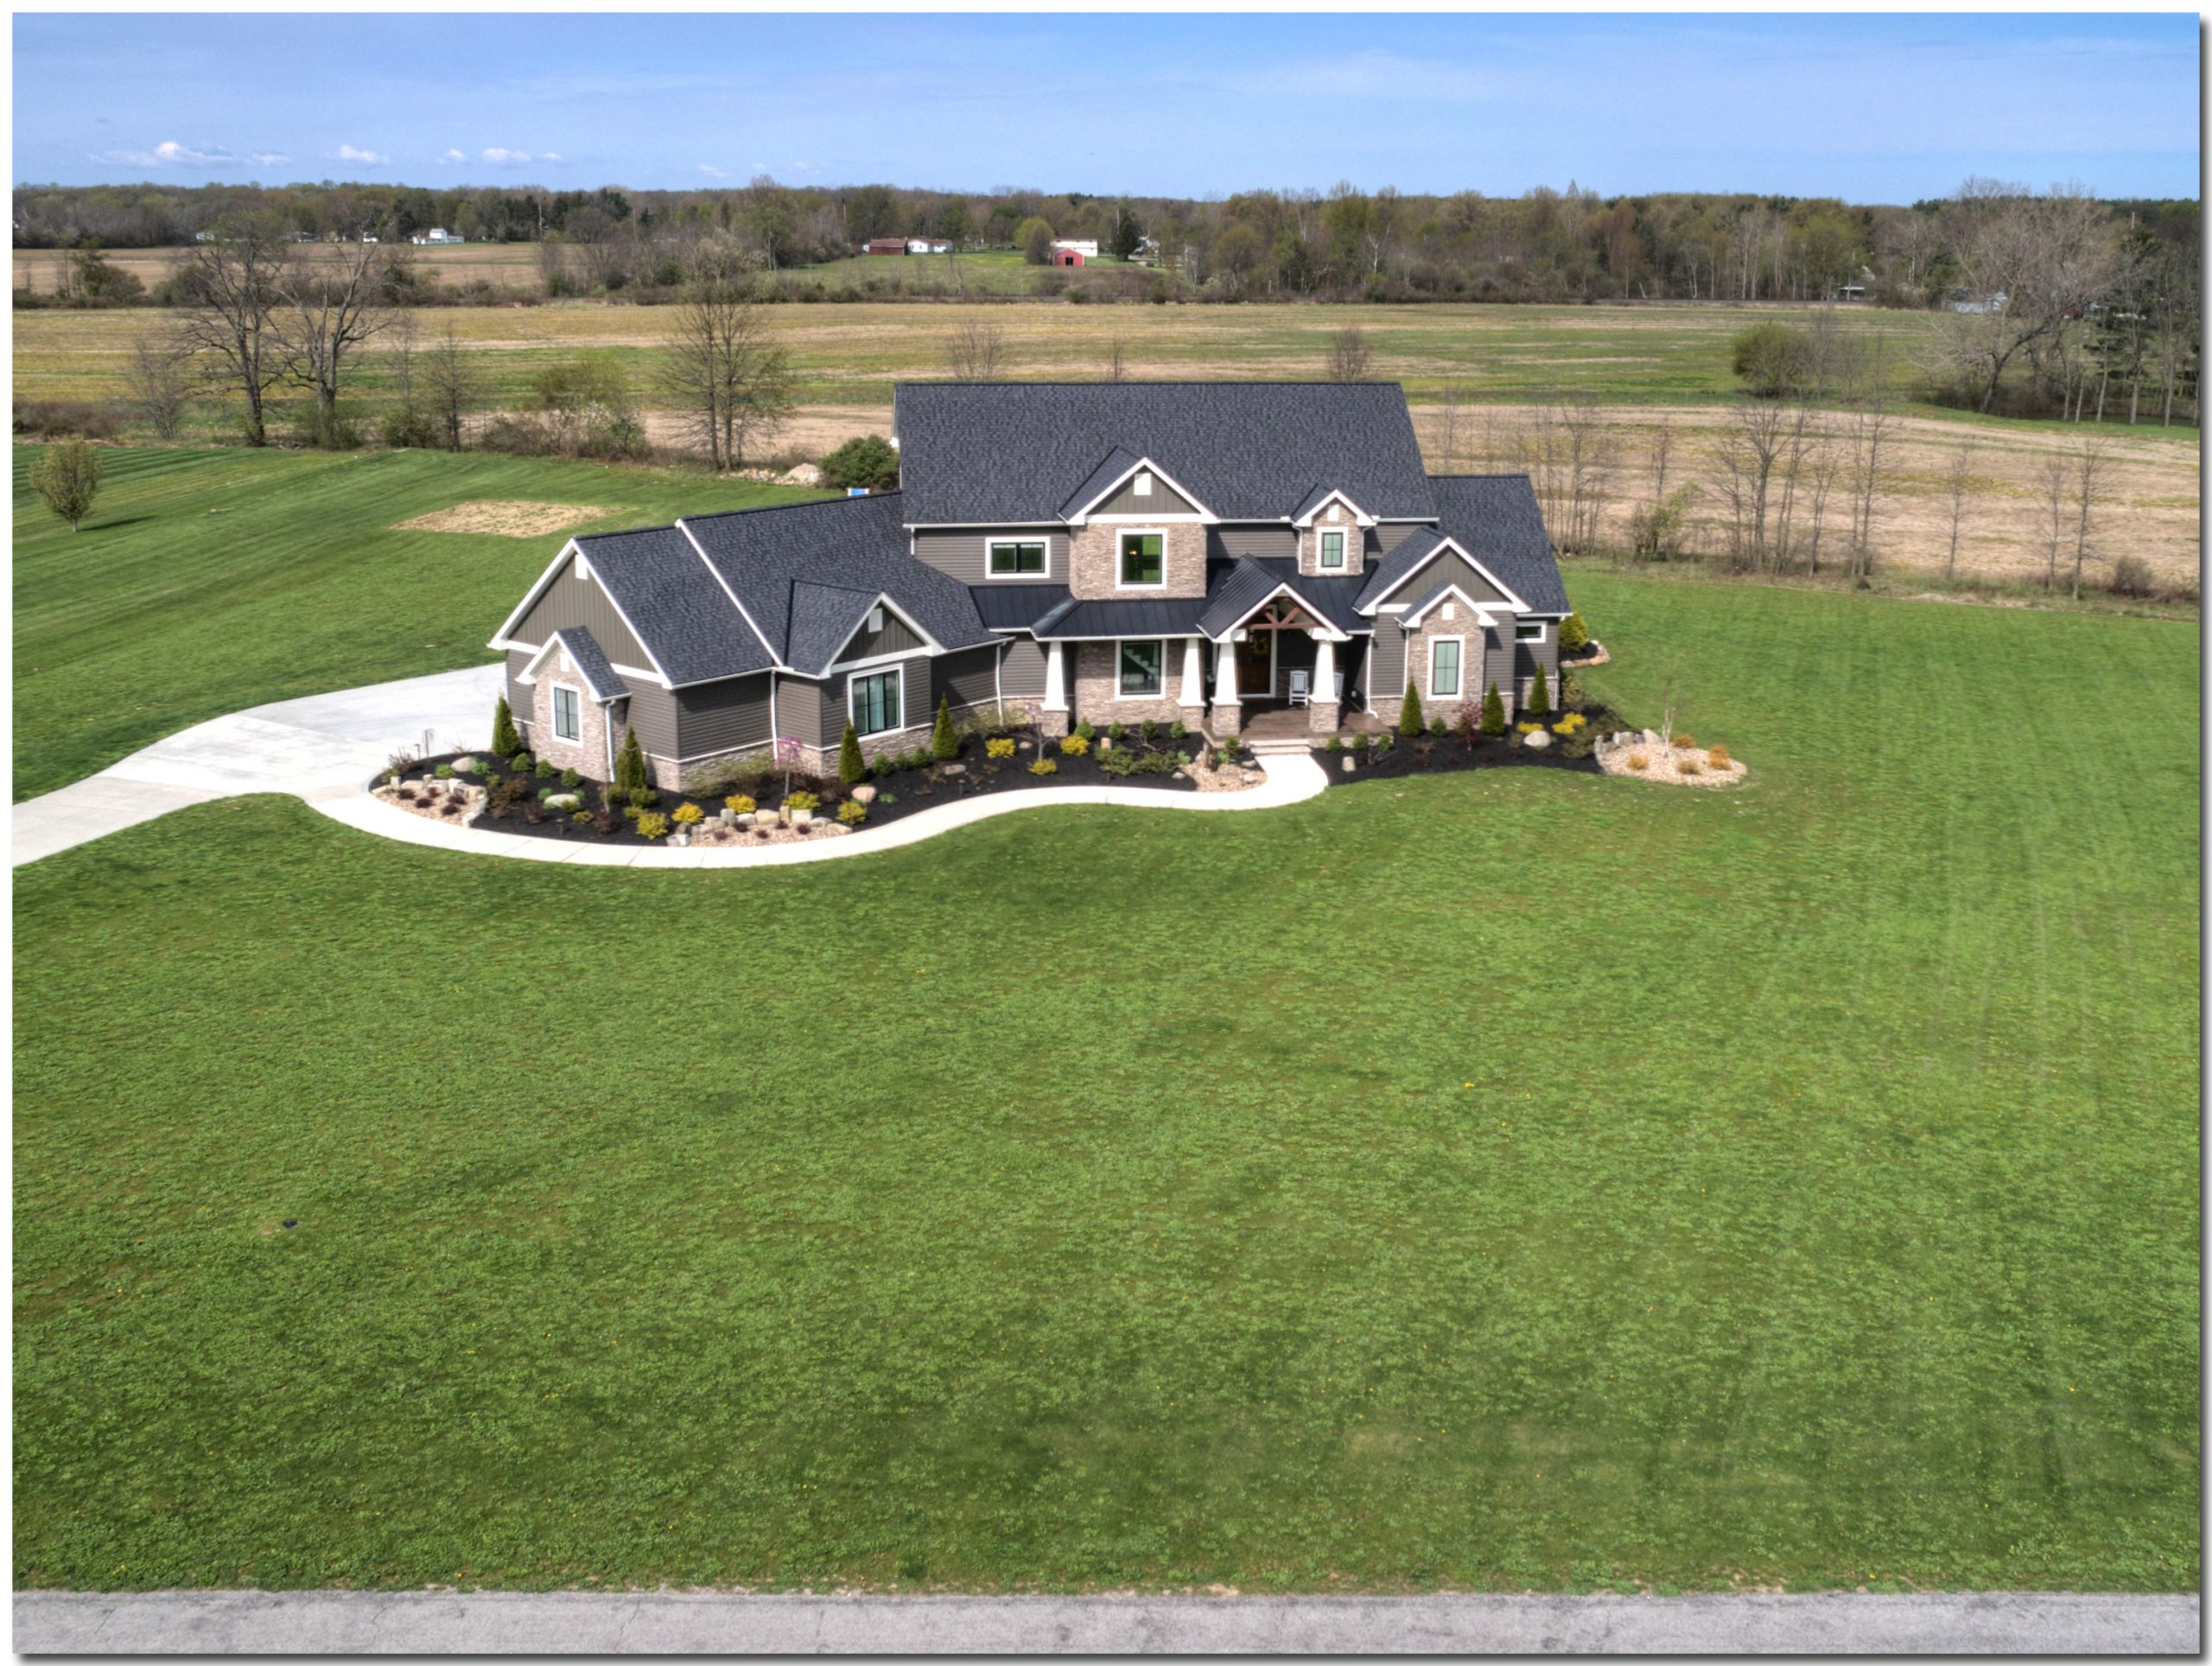 Highland Finished House Front Drone